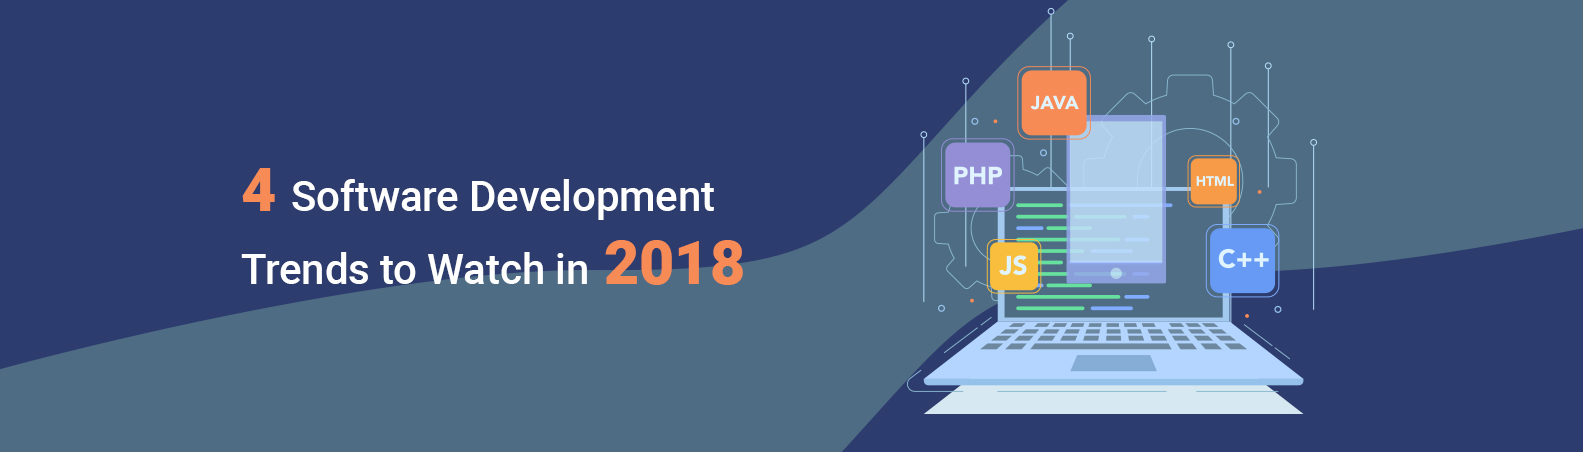 4 Software Development Trends to Watch in 2018